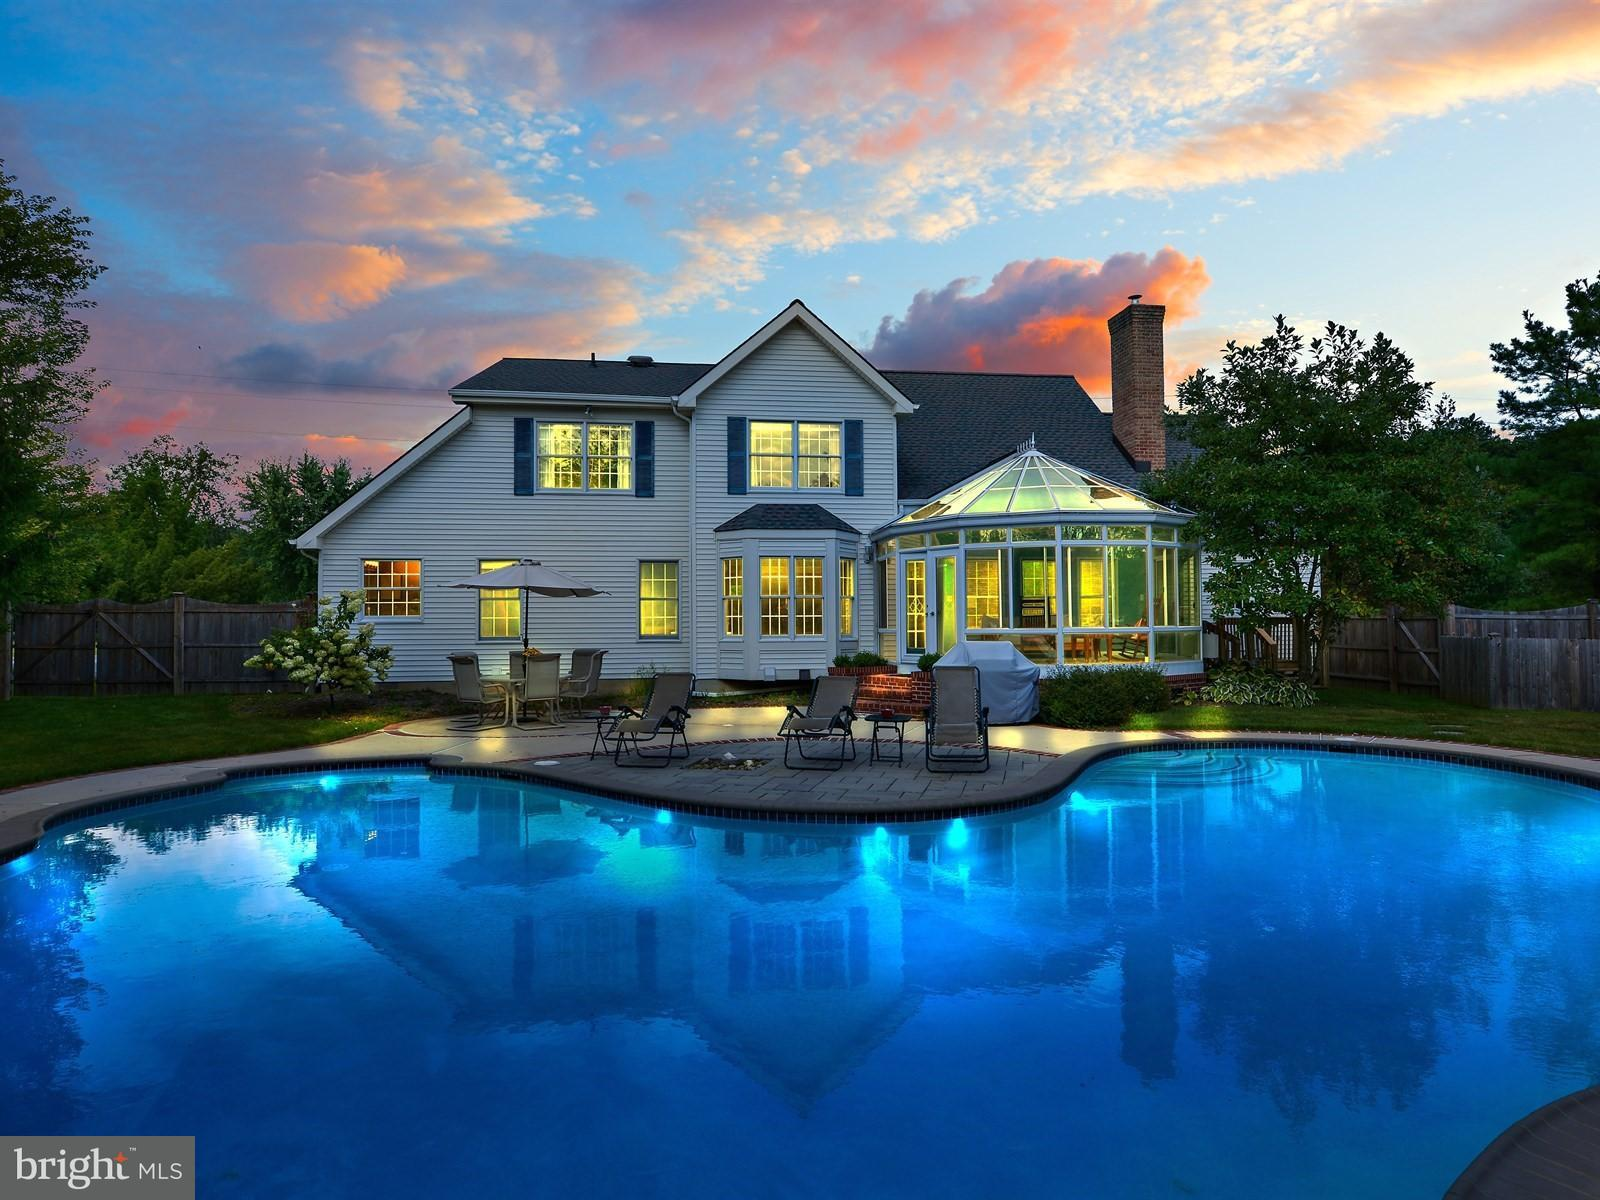 Day or night, this home is perfection.